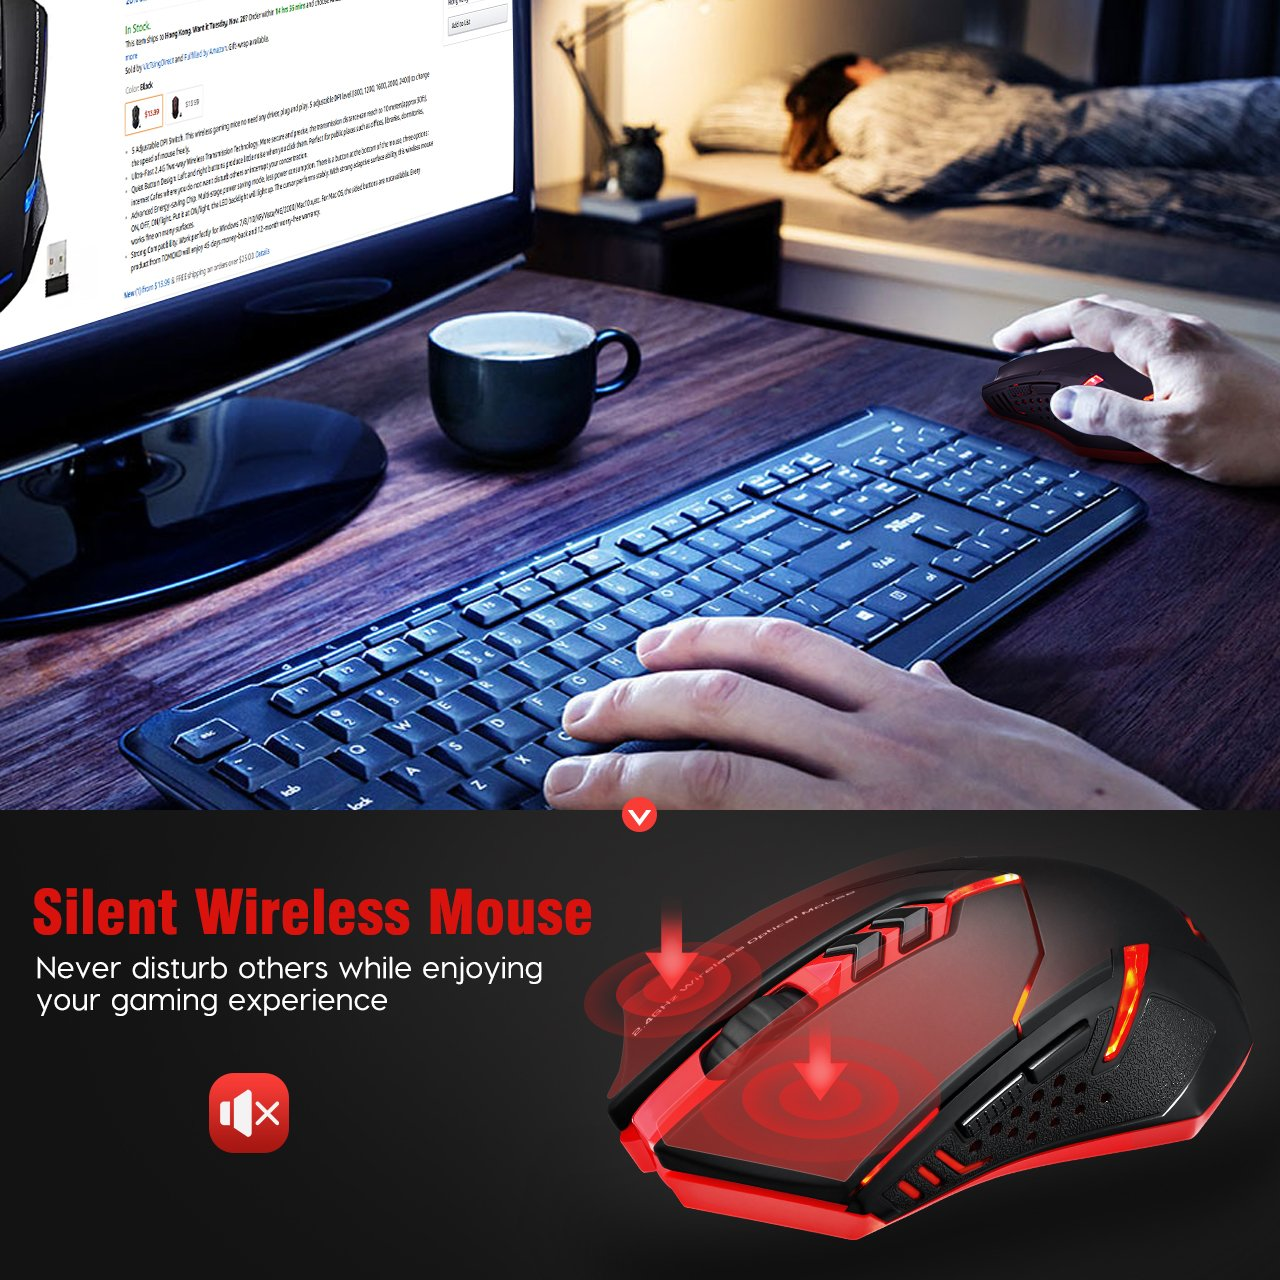 PICTEK Wireless Gaming Mouse, Silent Click, Side Buttons, 2 4G Cordless  Computer PC Gaming Mouse Laptop USB Mice, Advanced 2400 DPI Optical Sensor,